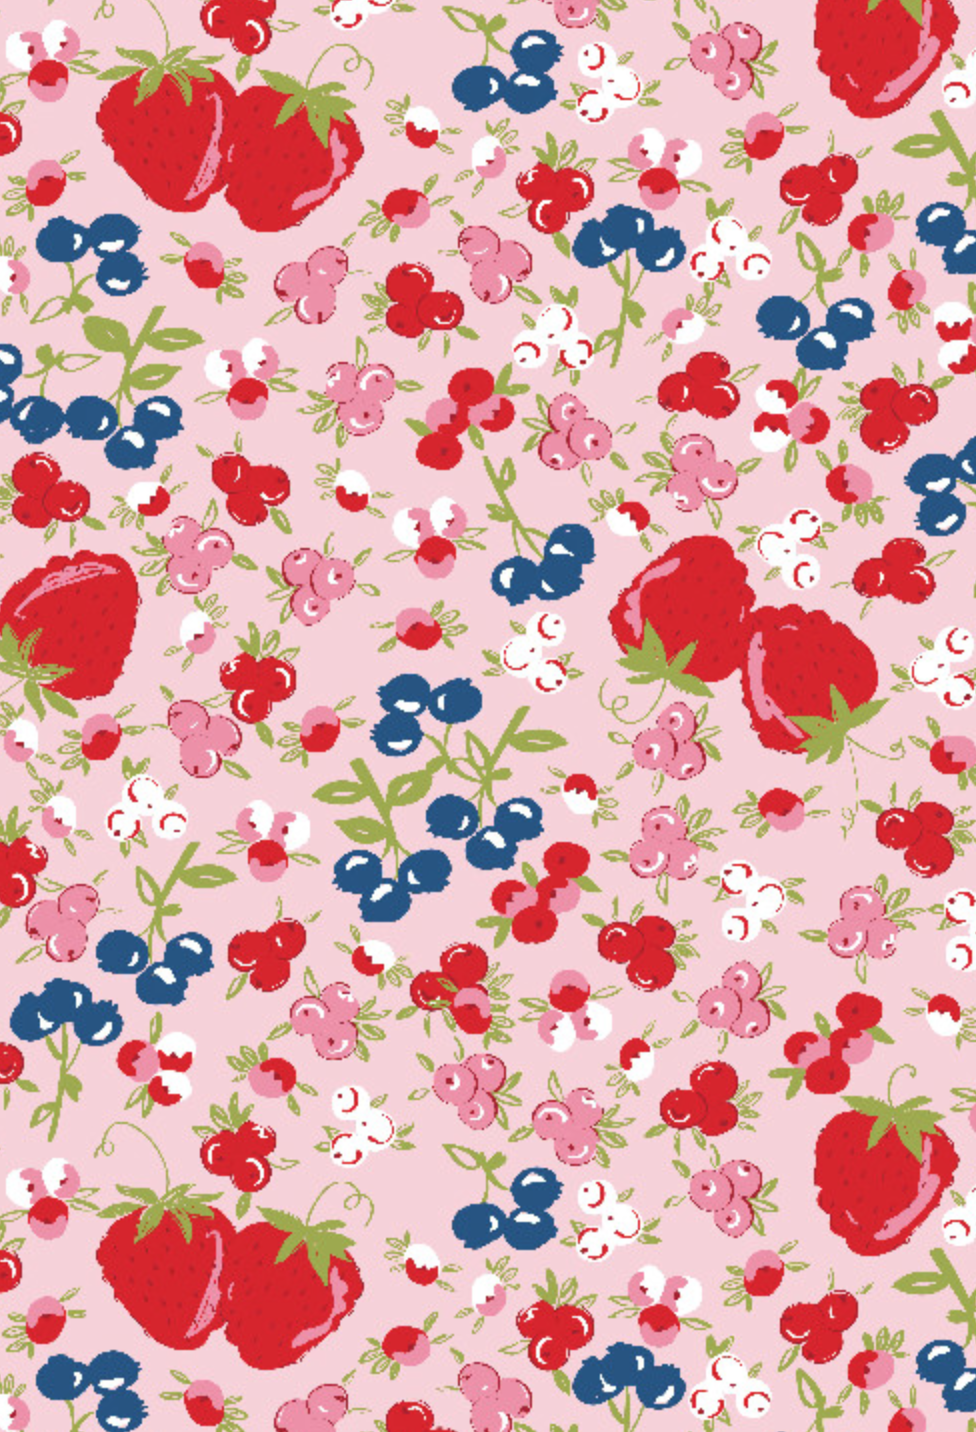 Richard Leeds International. Berries Pajama Print.